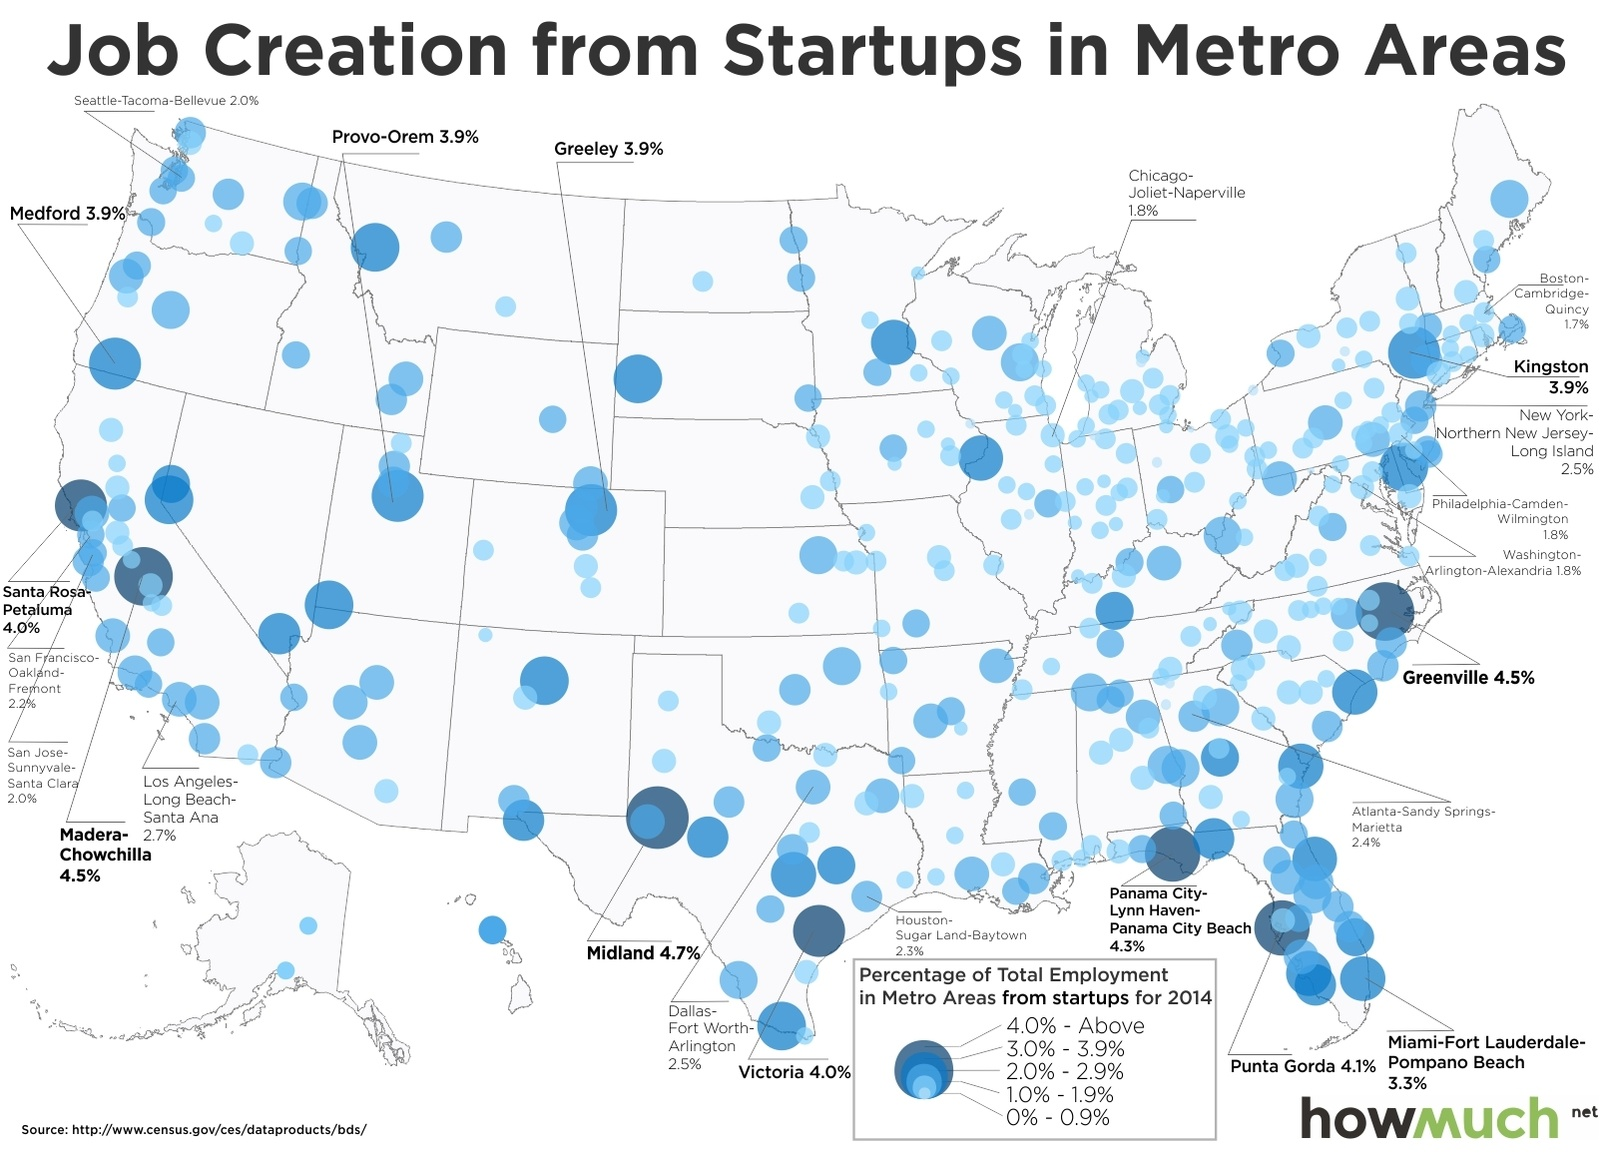 Job creation from Startups in United States Metro Areas